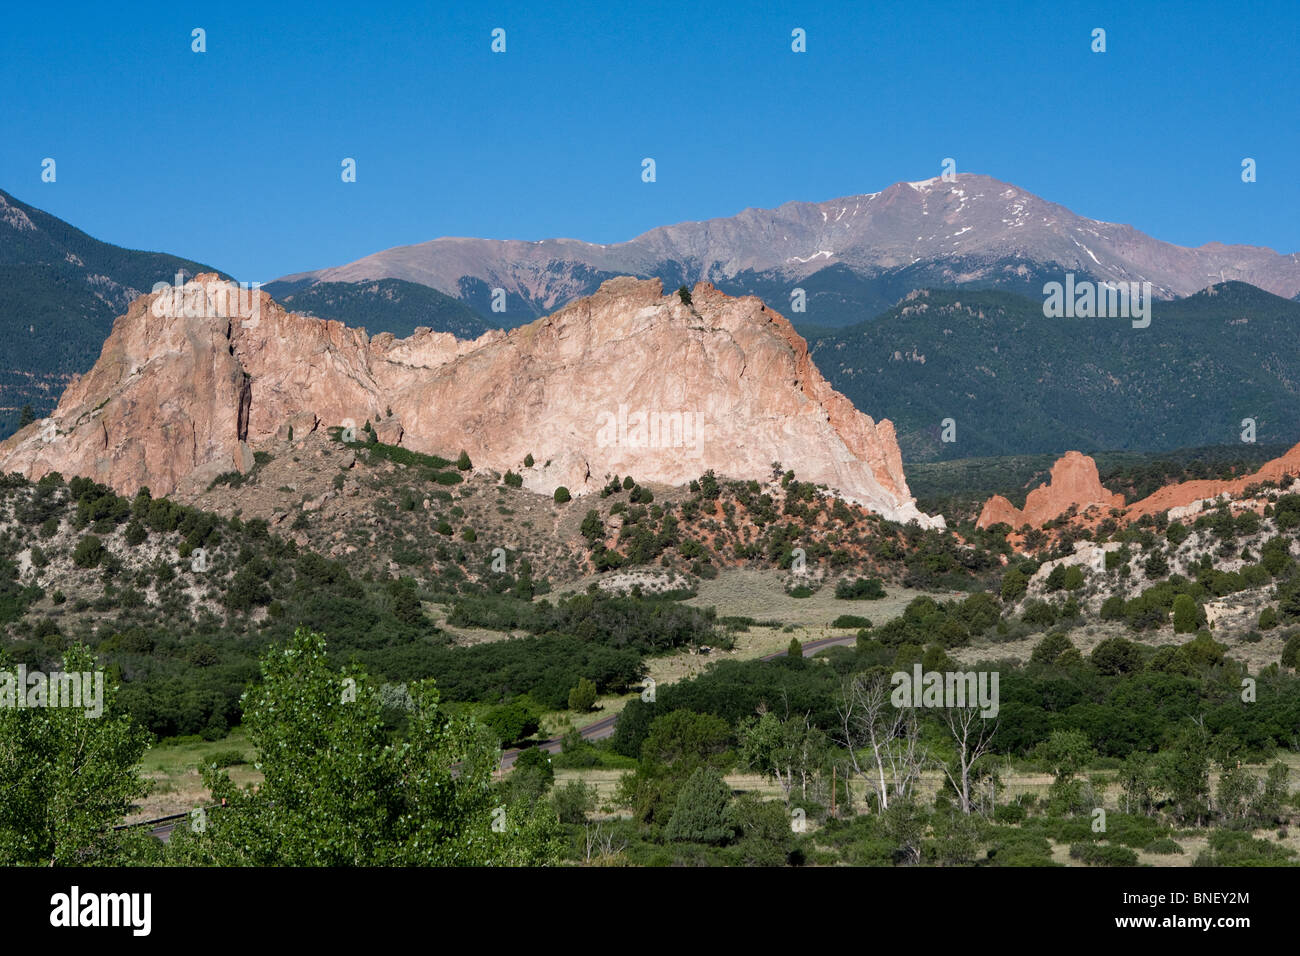 Garden of the Gods Colorado Red Rock formations - Stock Image